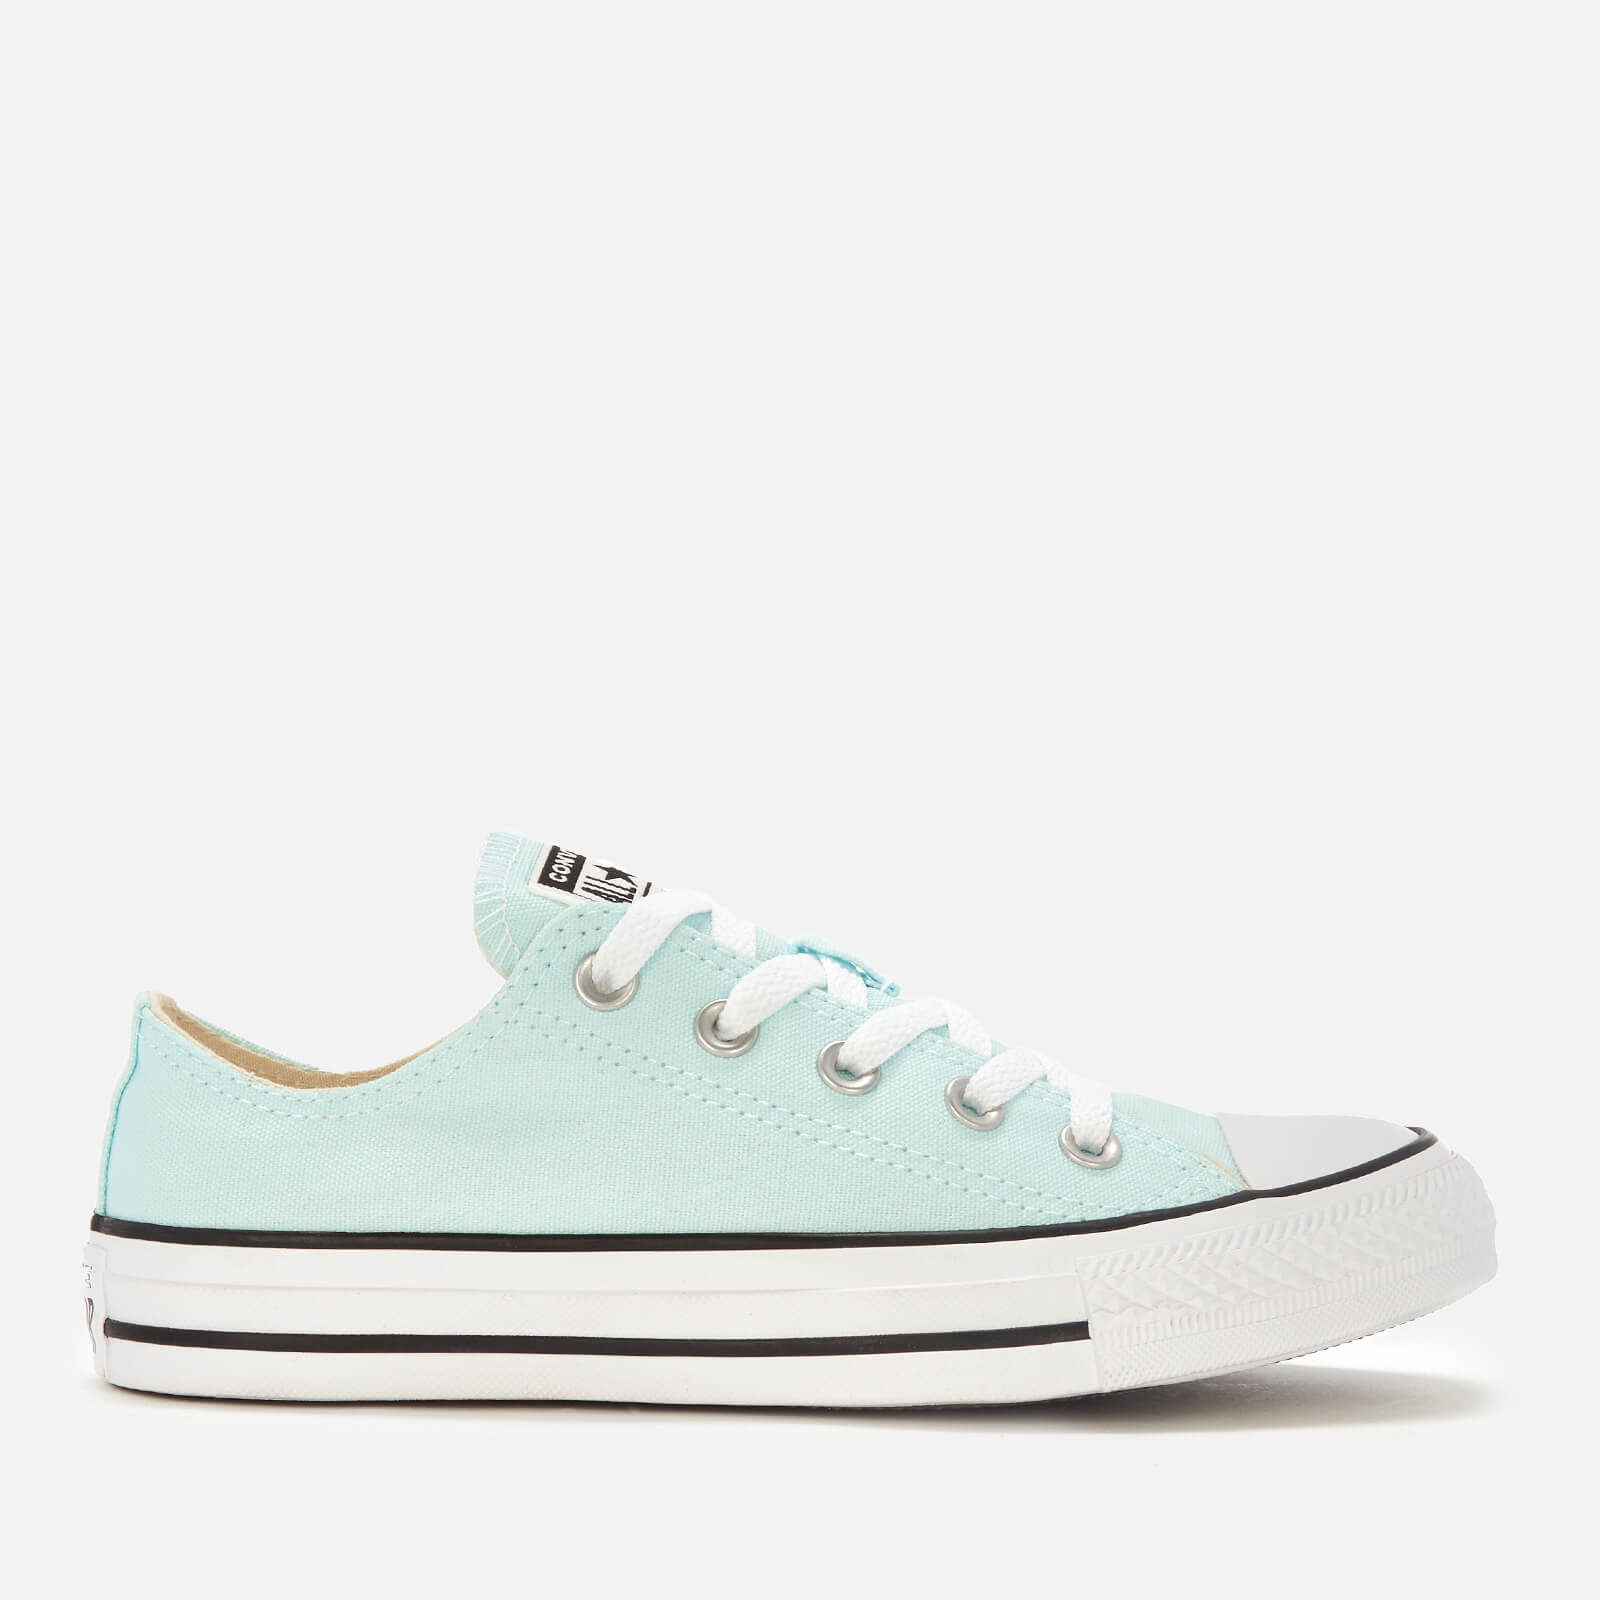 47b2ef88399d Converse Women s Chuck Taylor All Star Ox Trainers - Teal Tint ...